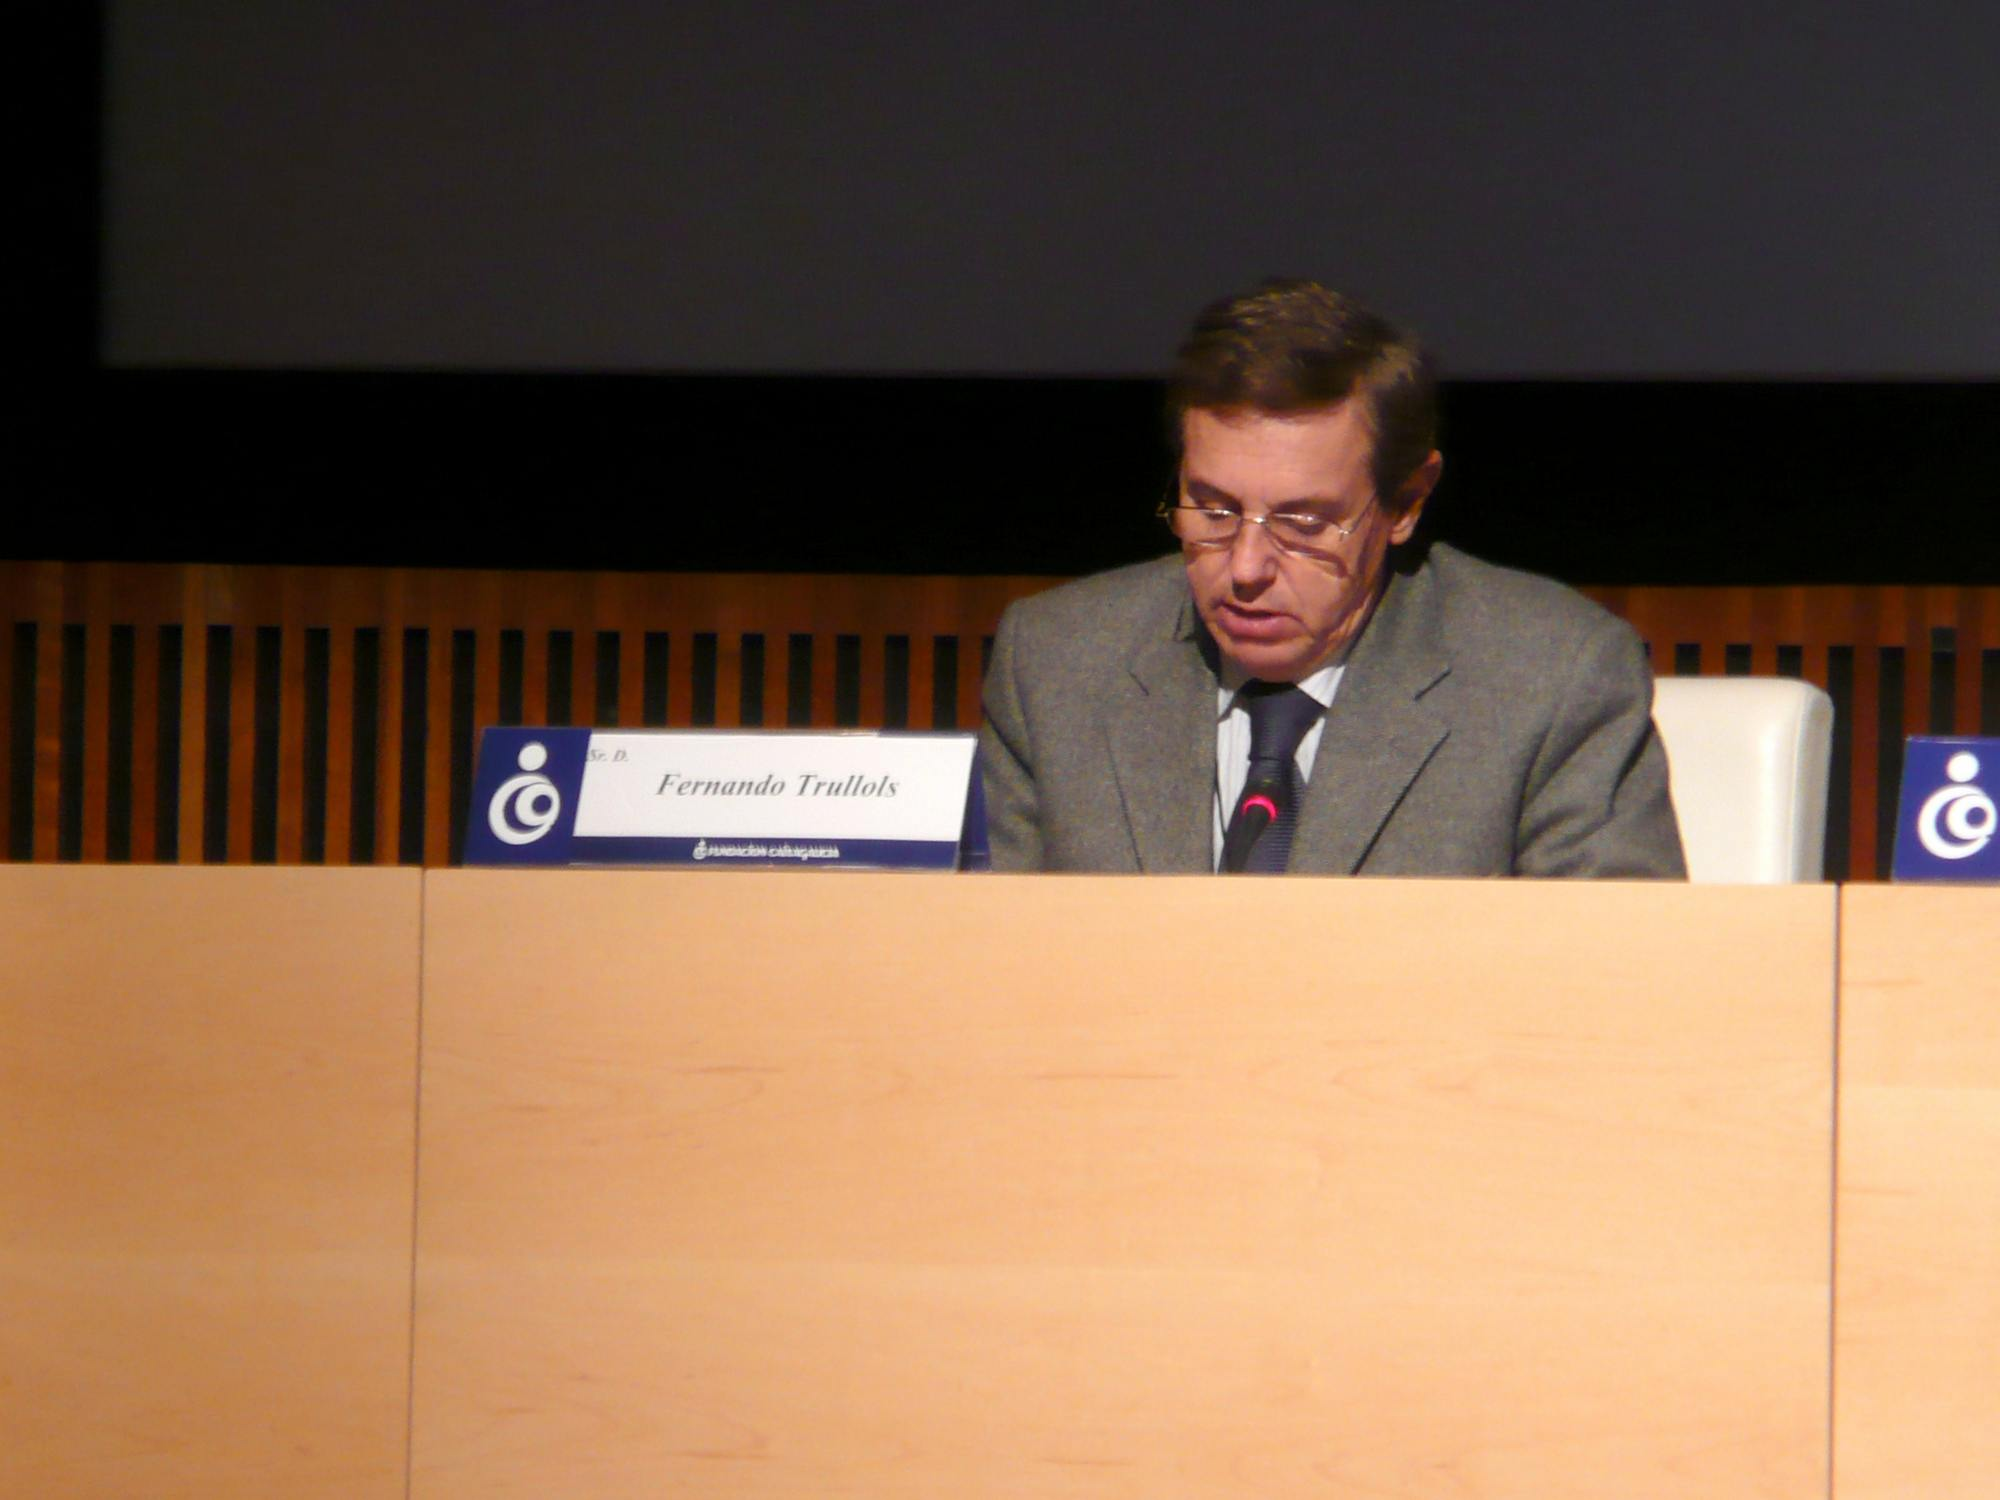 Fernando Trullols during the introduction of th Congress 2010